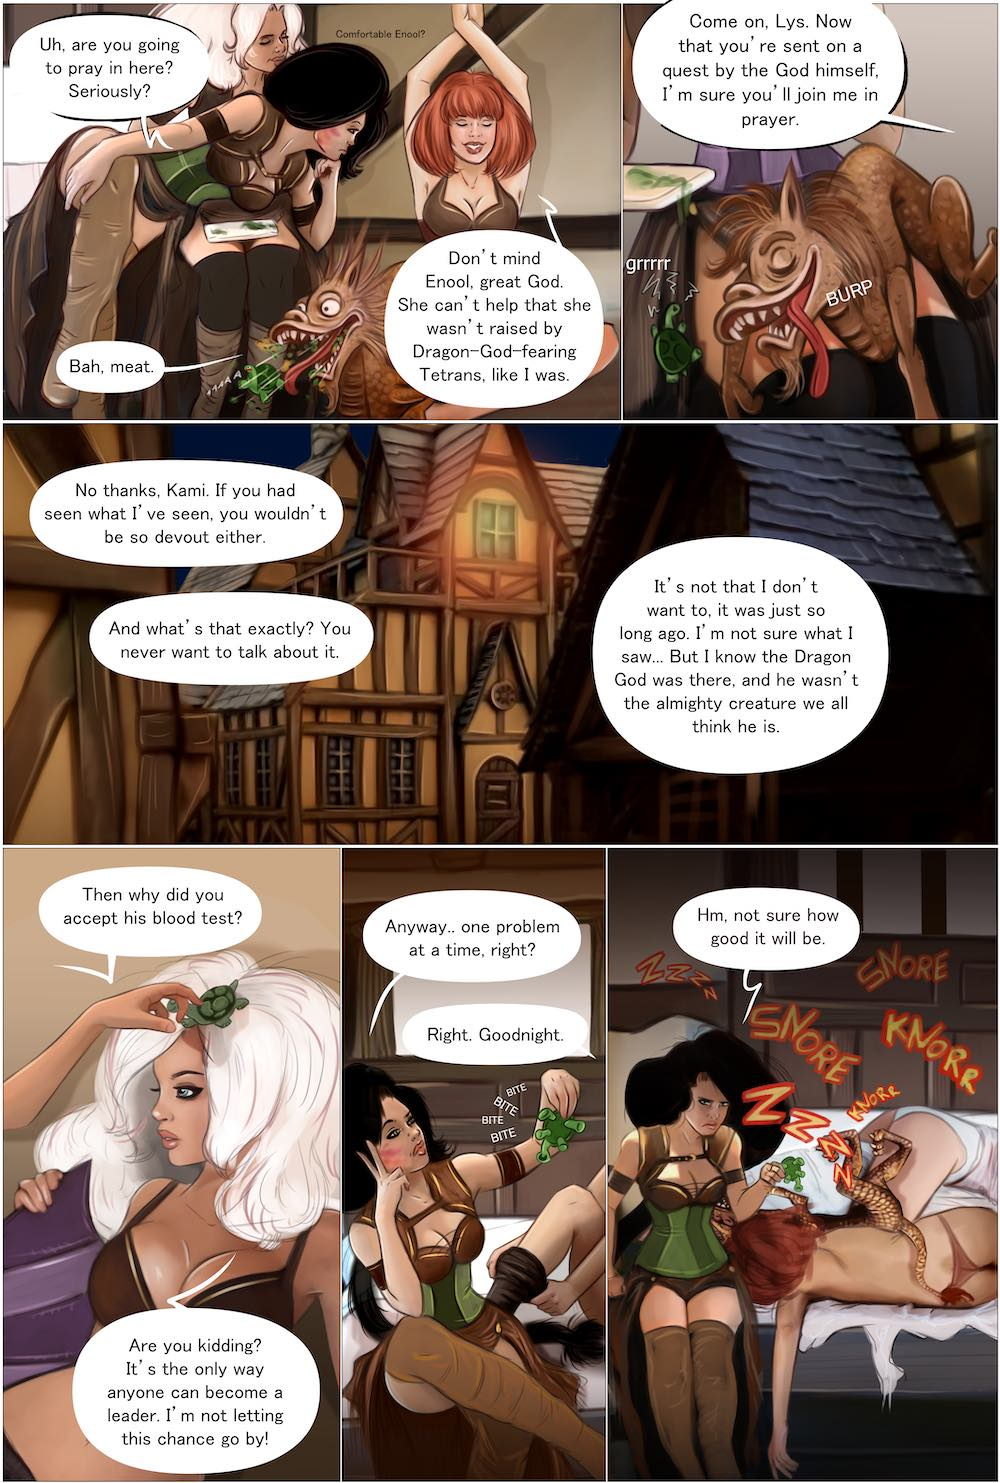 Page 20 of lyscomic